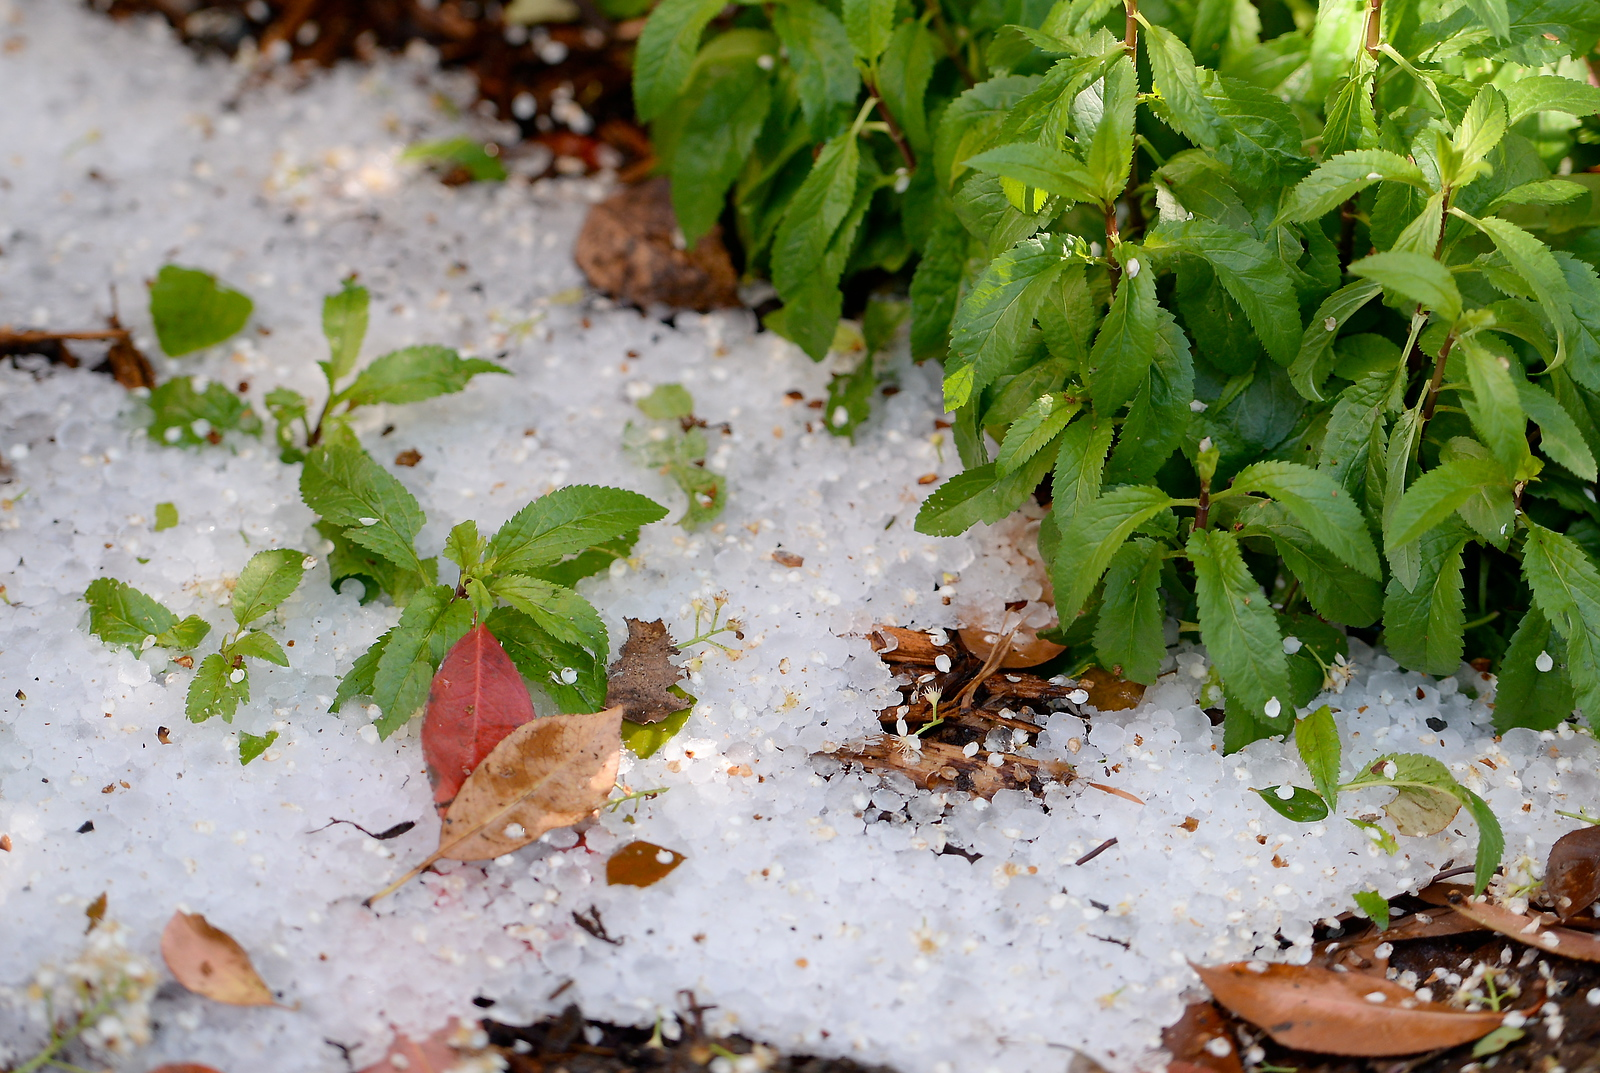 Leftover hail from yesterdays storm is seen during a tour of the garden at Ruth Guzley's residence in Chico, Calif. Friday April 14, 2017. This is one of the gardens that will be featured during the St. John Episcopal Church Garden Tour.  (Bill Husa -- Enterprise-Record)